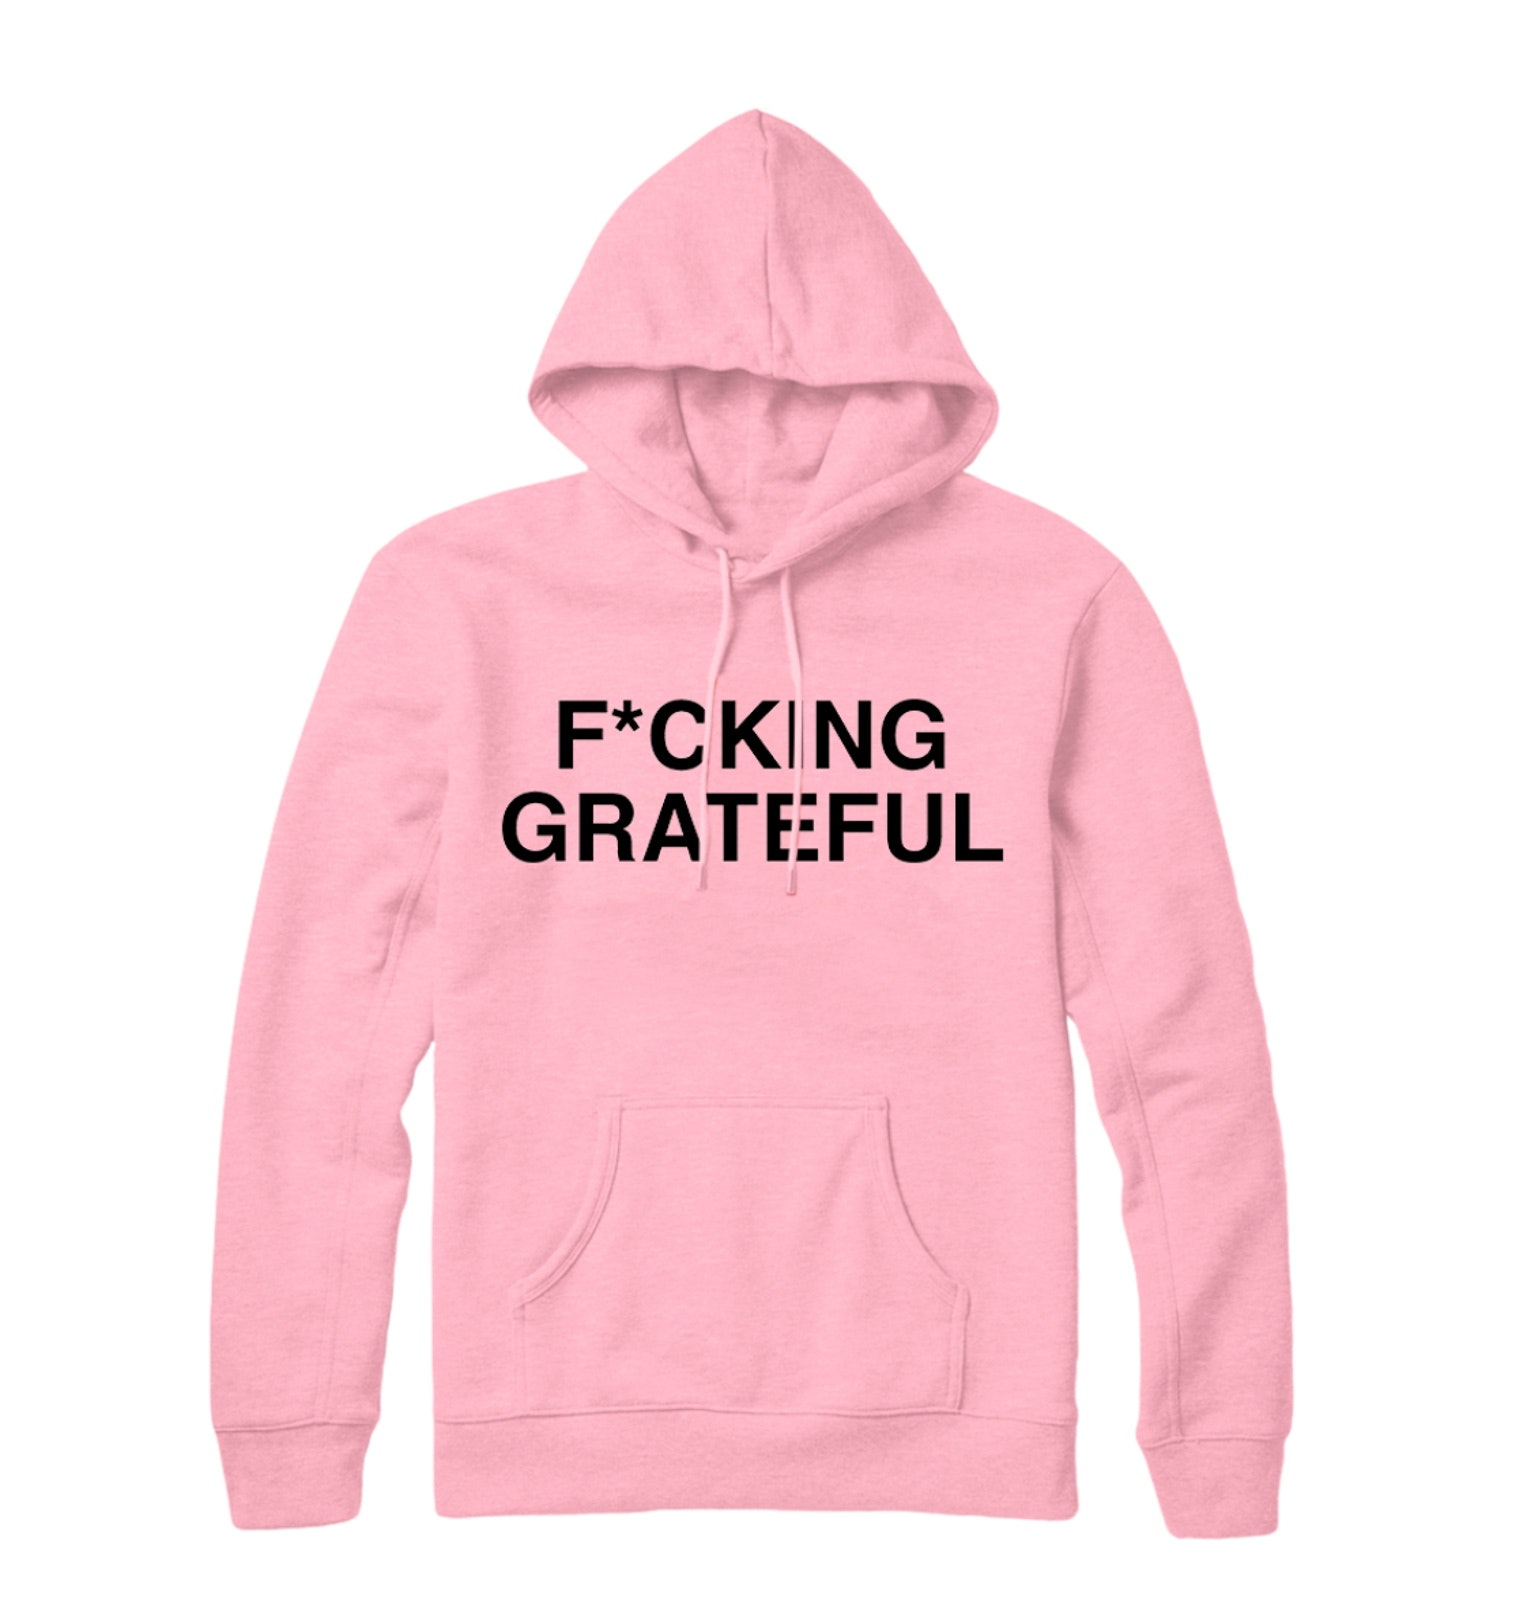 music holiday gifts 2018 %281 of 10%29